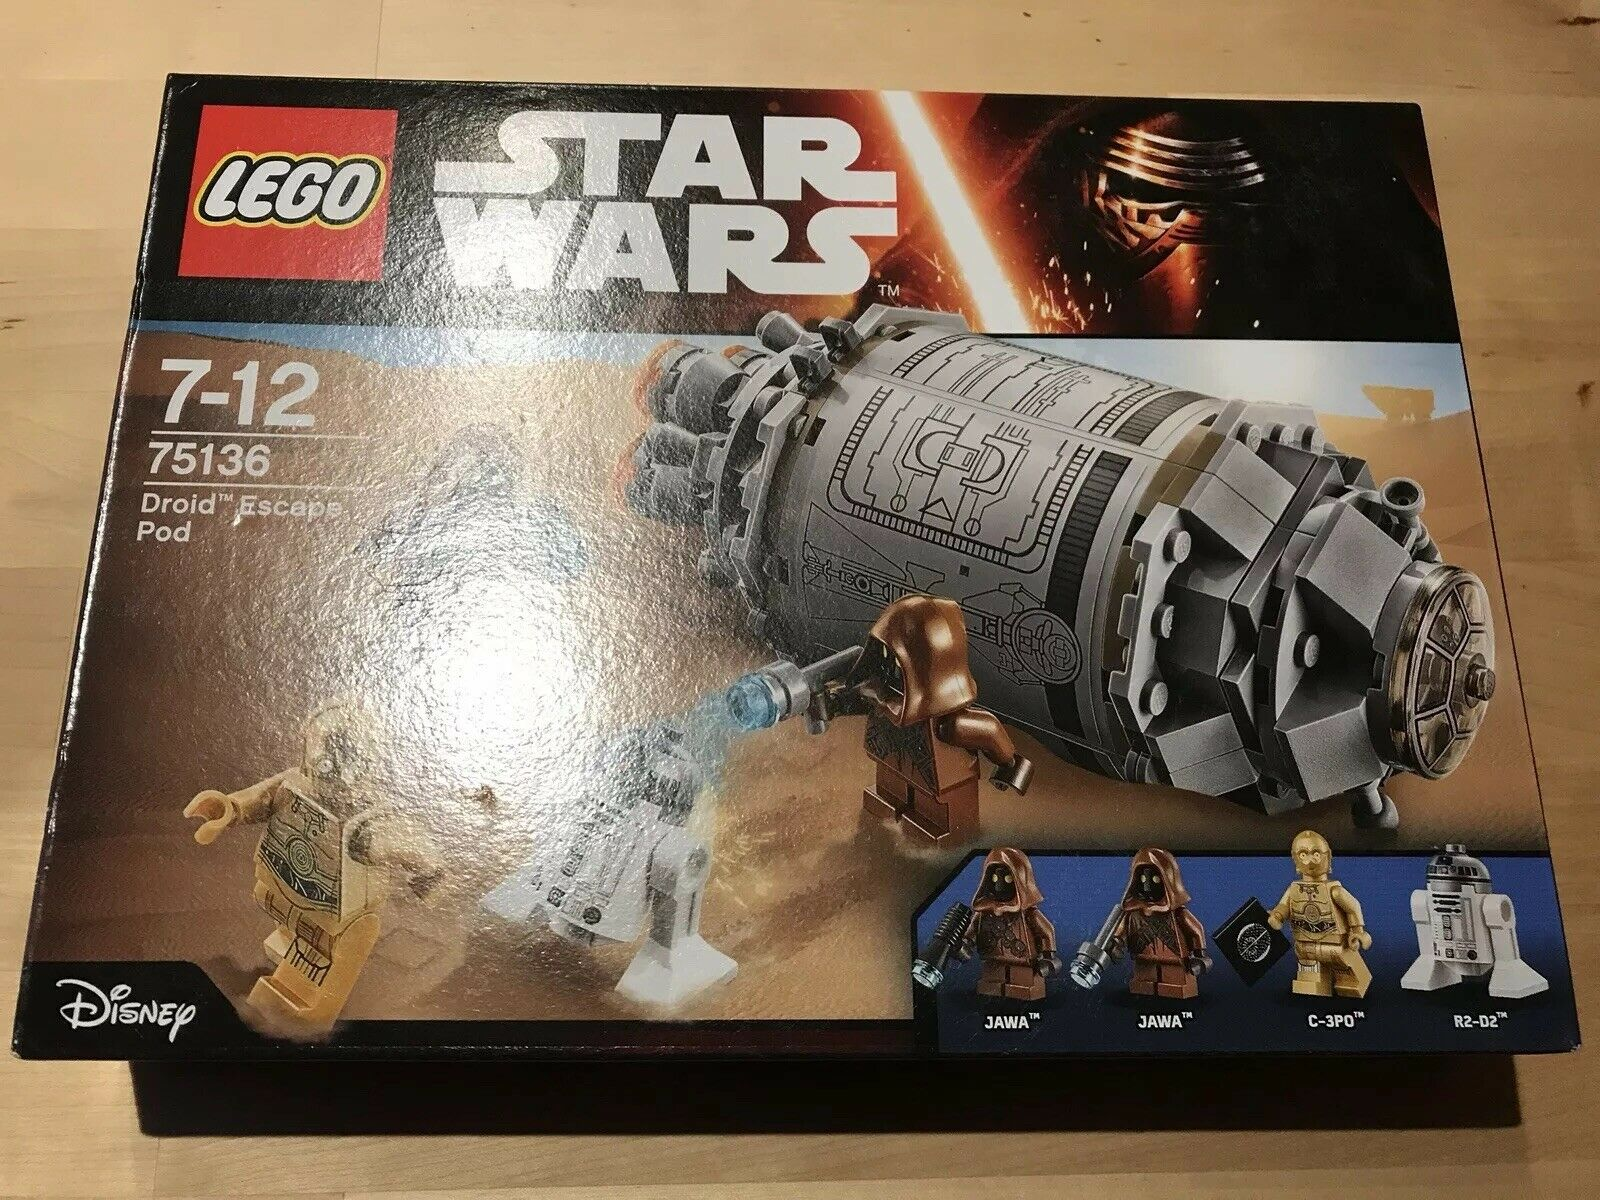 Lego Star Wars 75136 - Droid Escape Pod. New, Sealed.